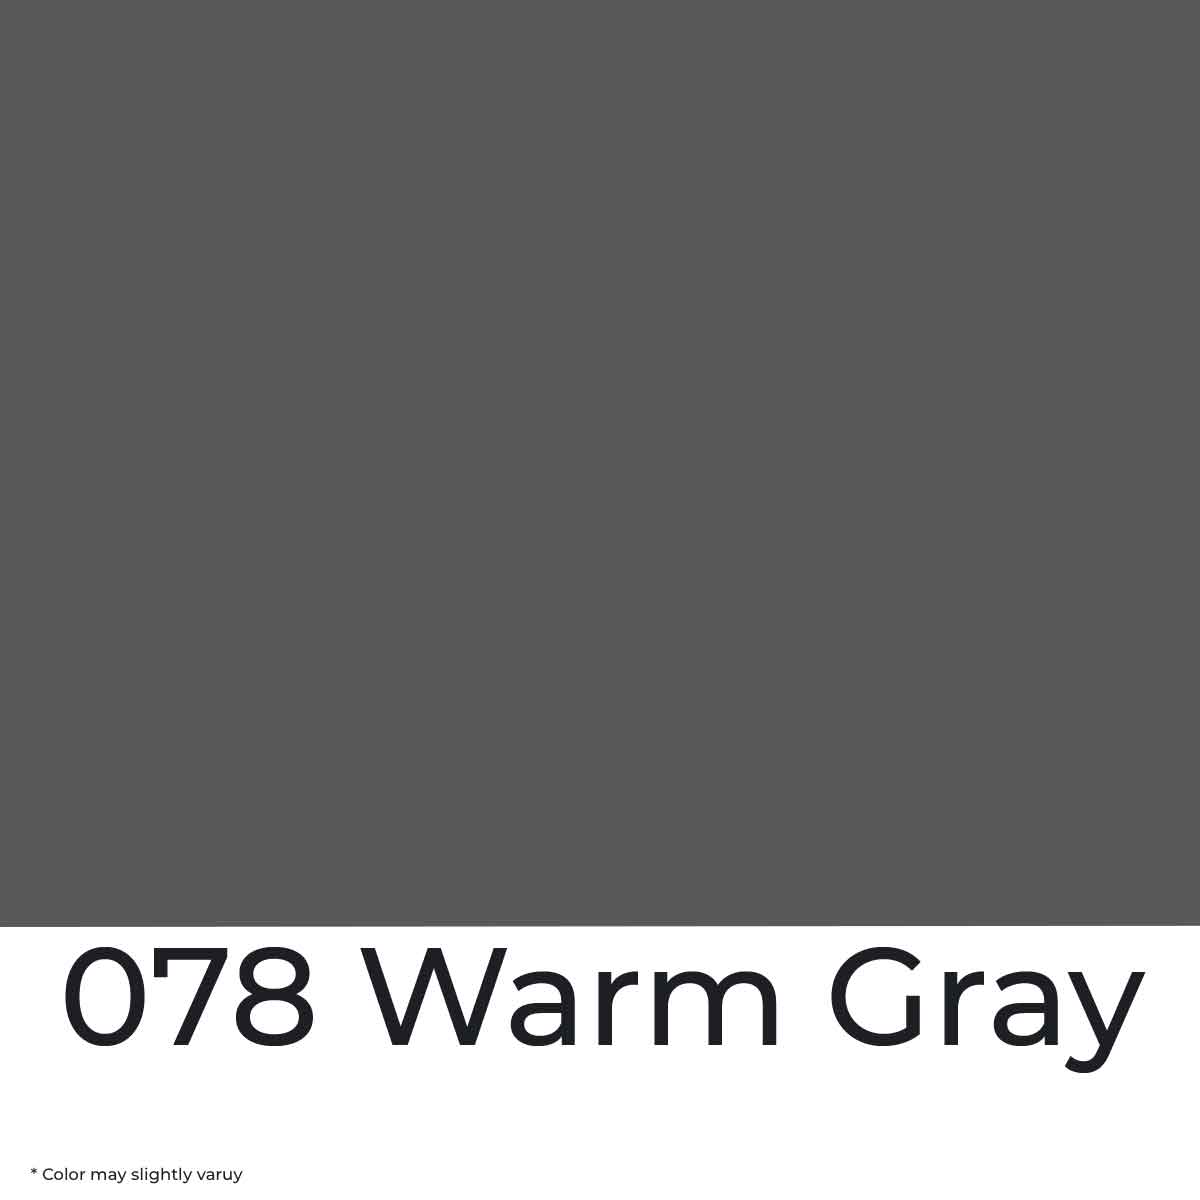 Buy Daler Rowney Acrylic Paint Supplies- Warm Gray 078 from najmaonline.com Abu Dhabi, Dubai -UAE